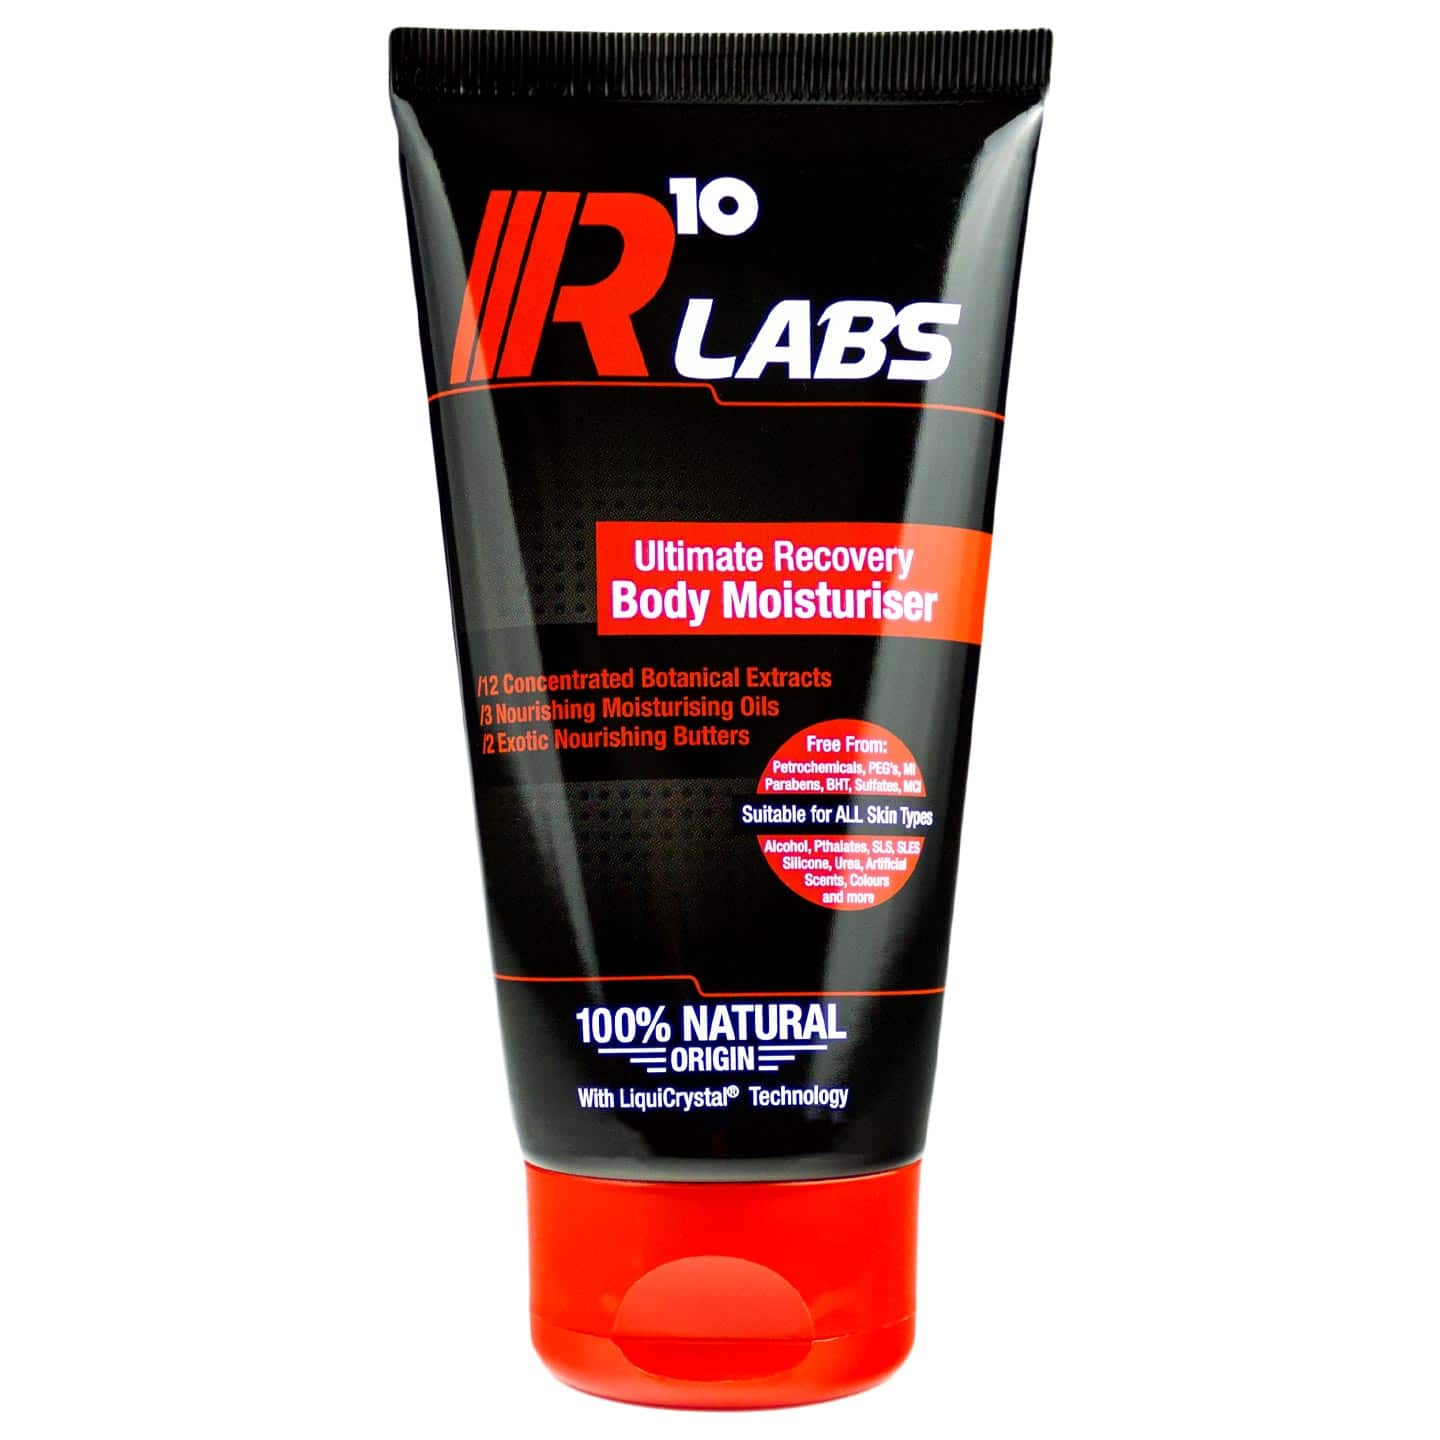 Ultimate Recovery Body Moisturiser • R10 Labs - 100% Natural Men's